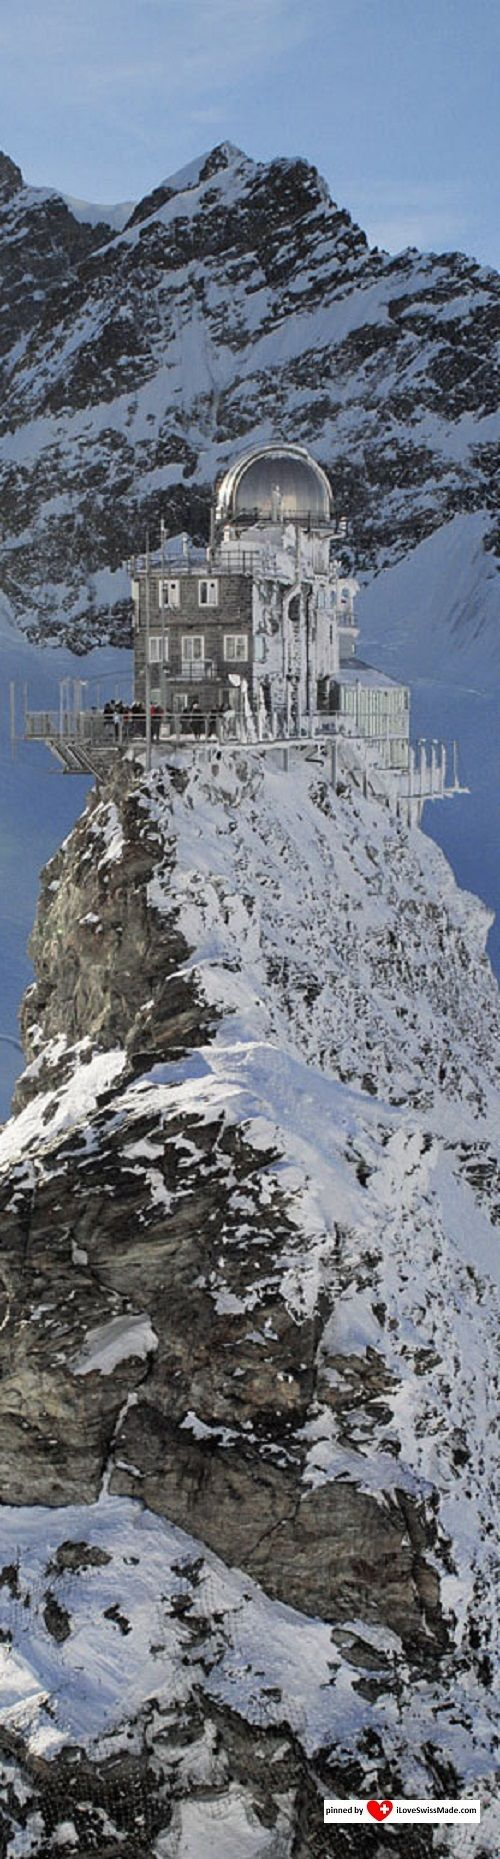 Jungfraujoch Top of Europe. I do not remember seeing it from this angle, or I probably would not have gone.